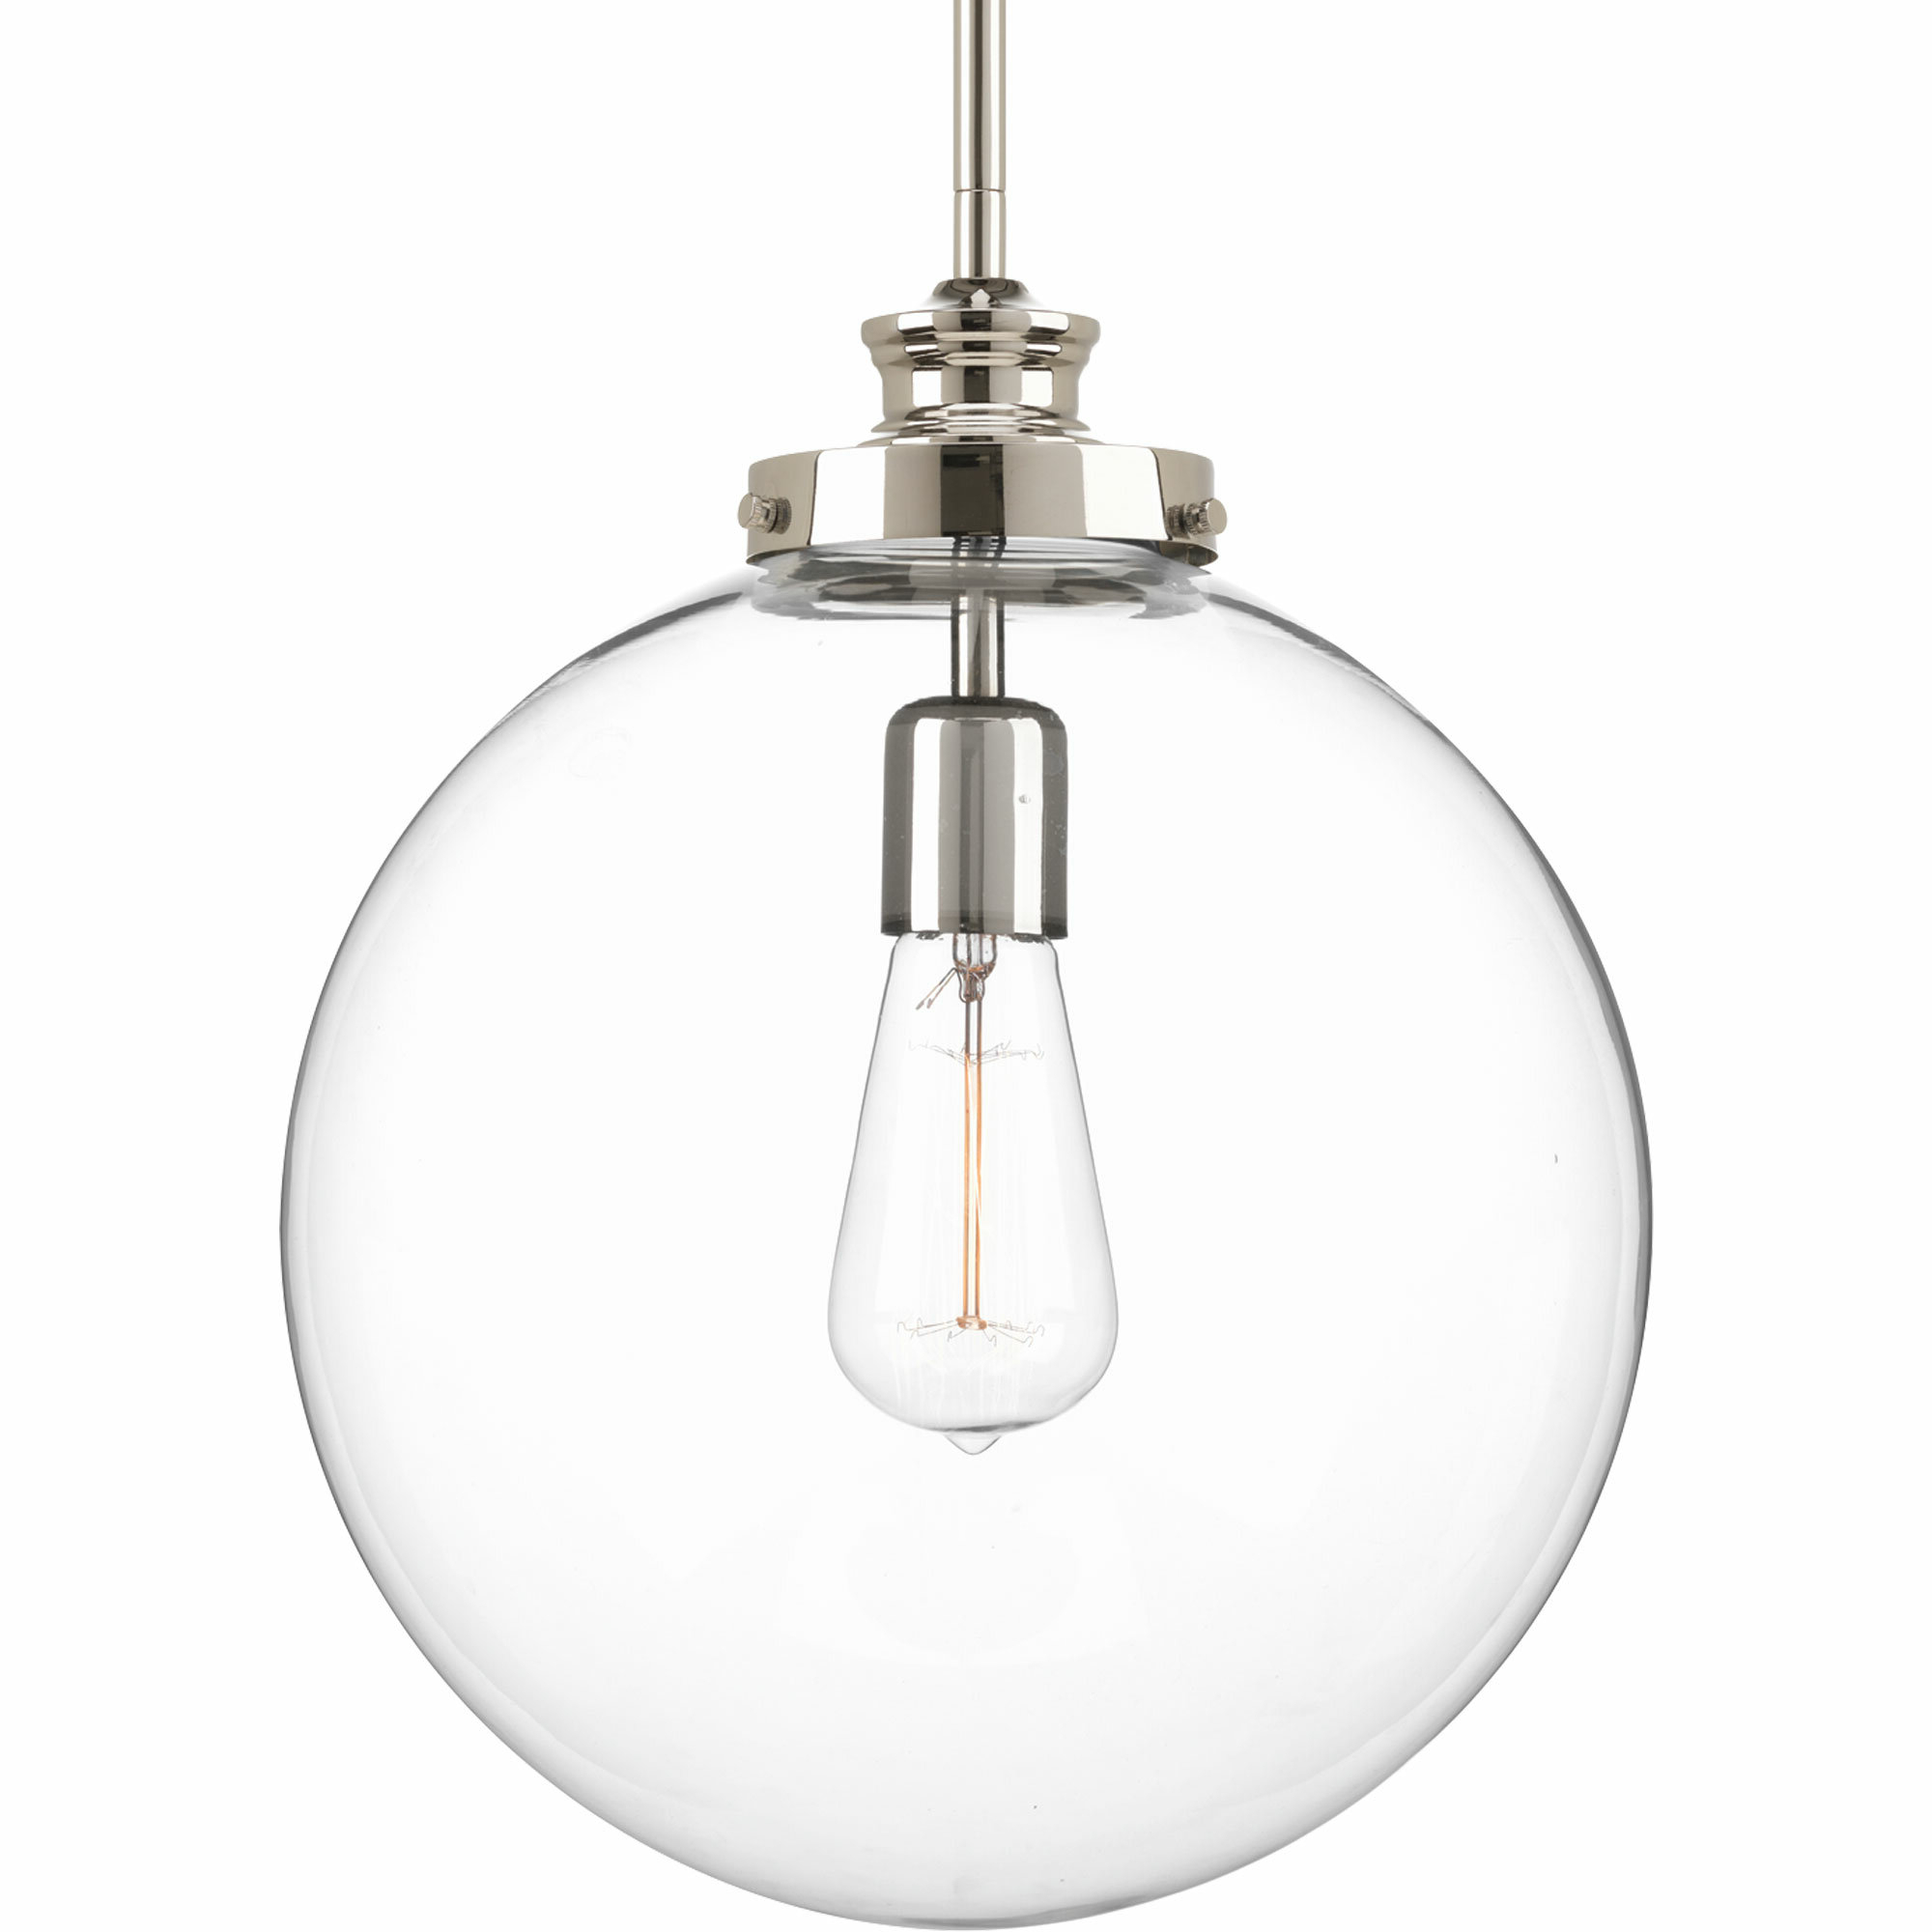 Most Popular Cayden 1 Light Single Globe Pendants Pertaining To Cayden 1 Light Single Globe Pendant (View 3 of 20)